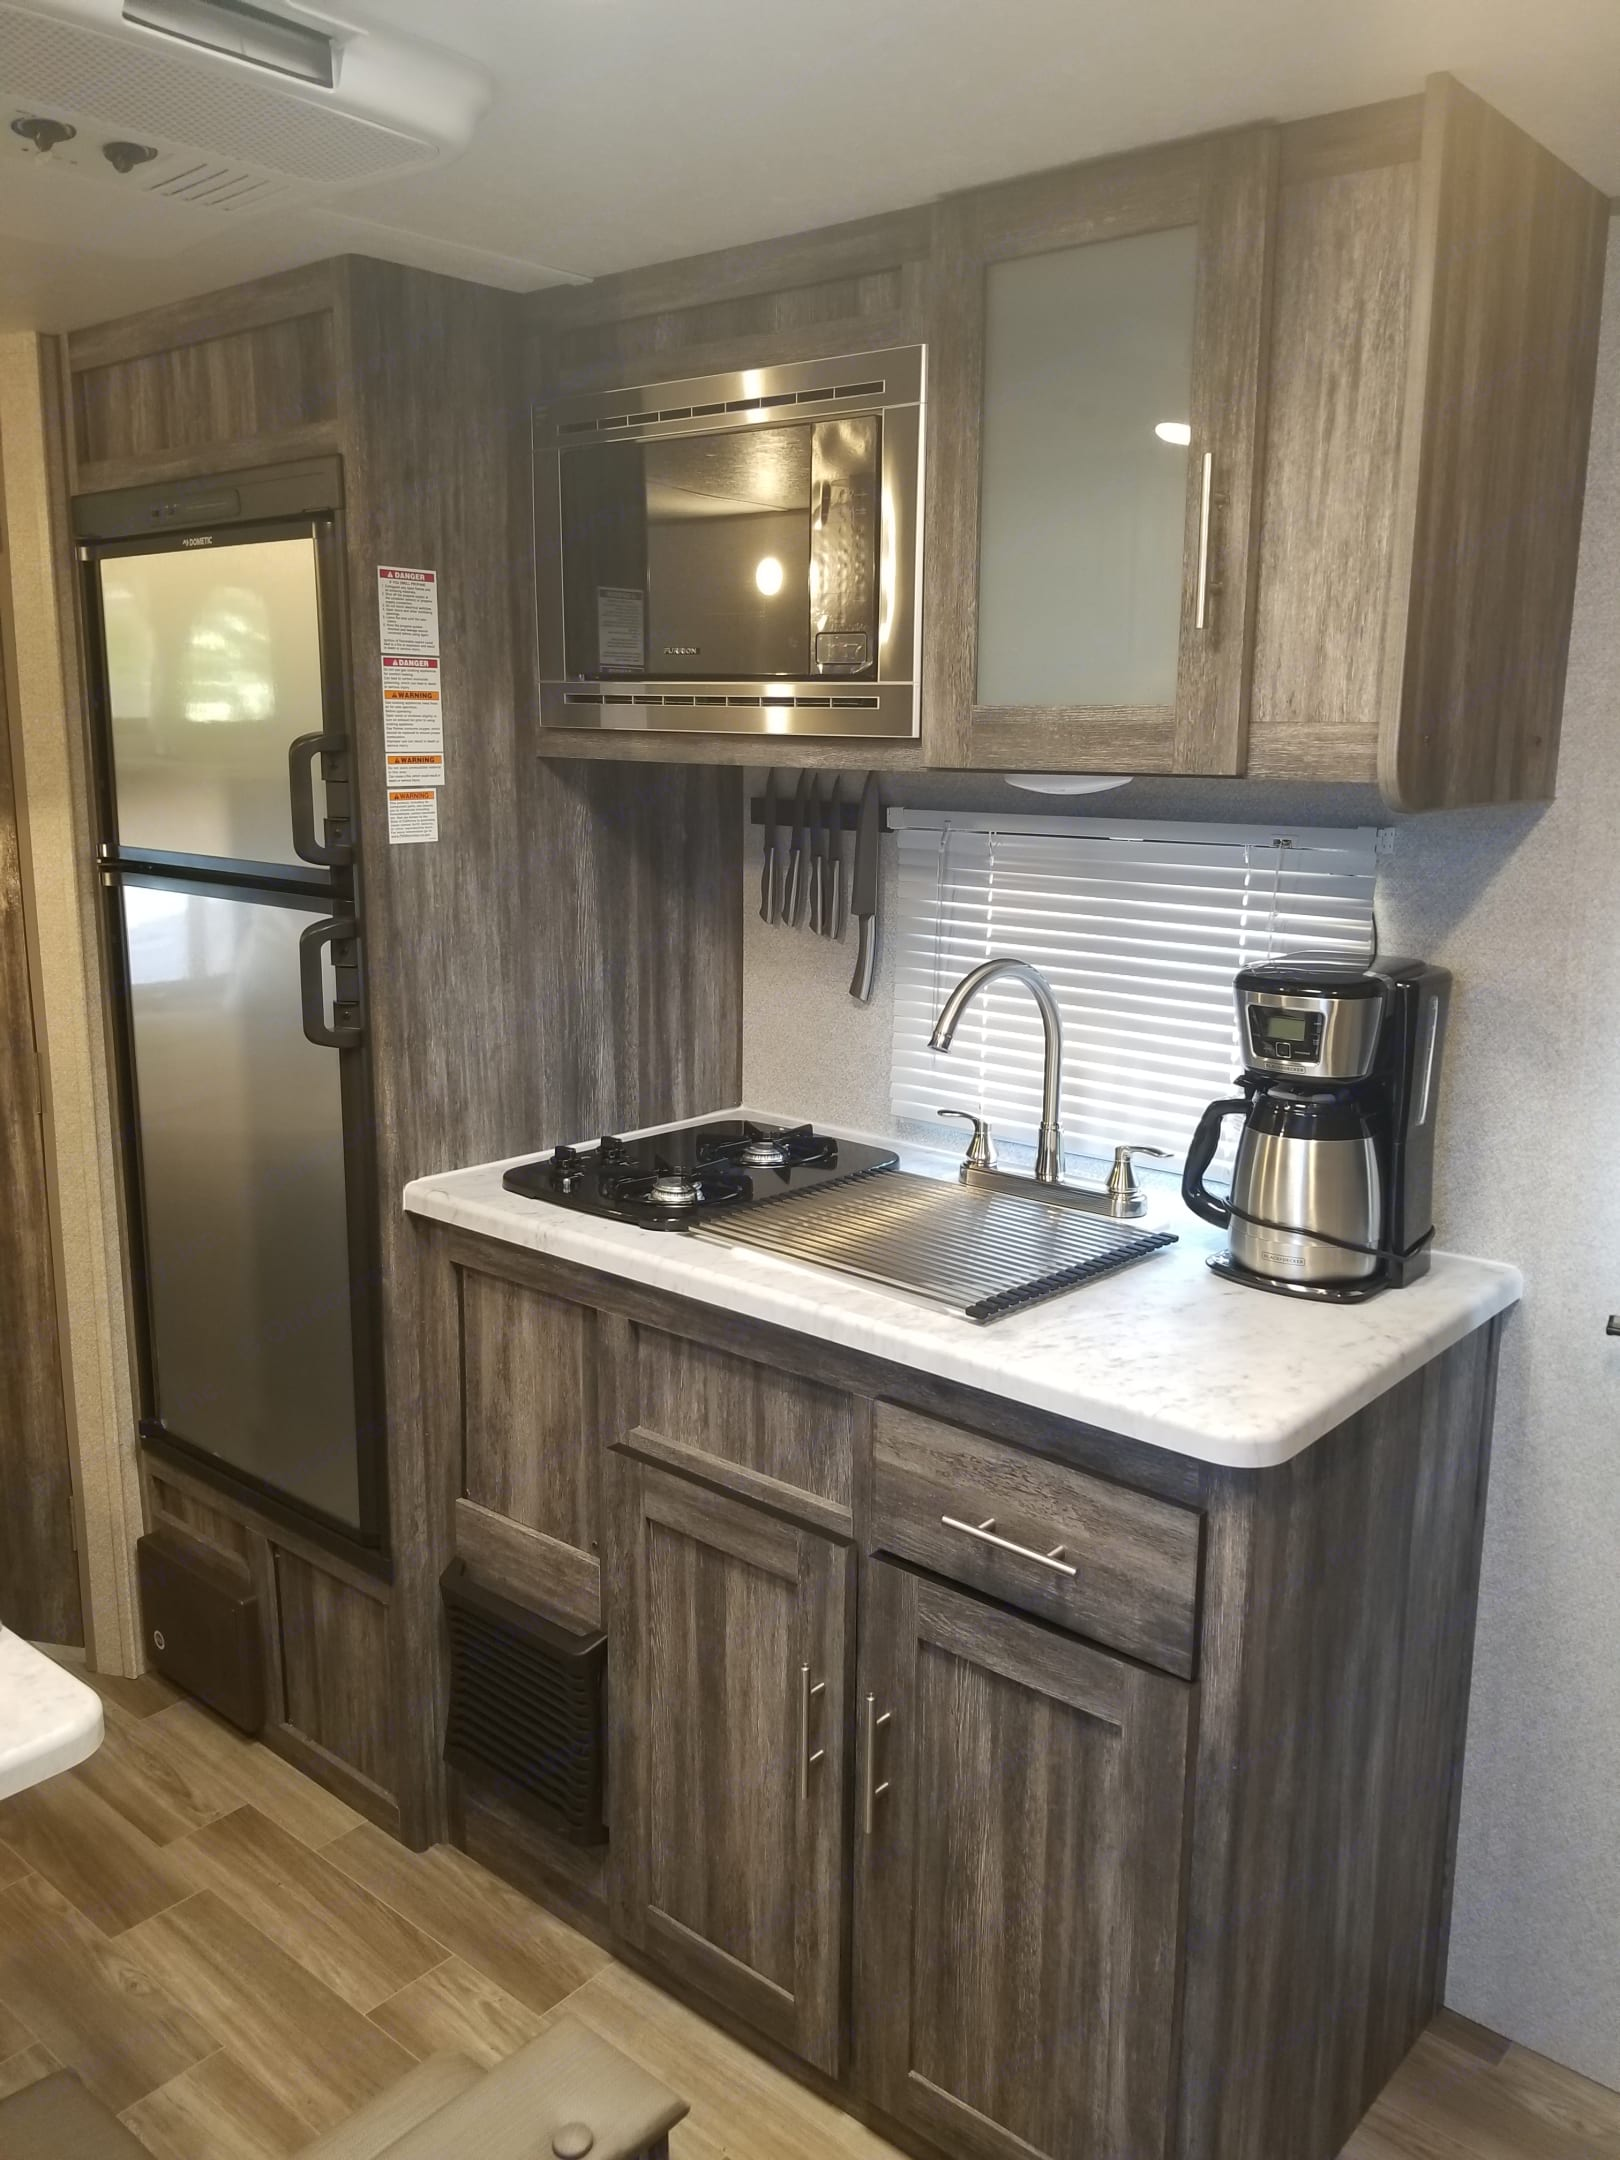 Stove microwave and fridge. Forest River Wildwood 2020